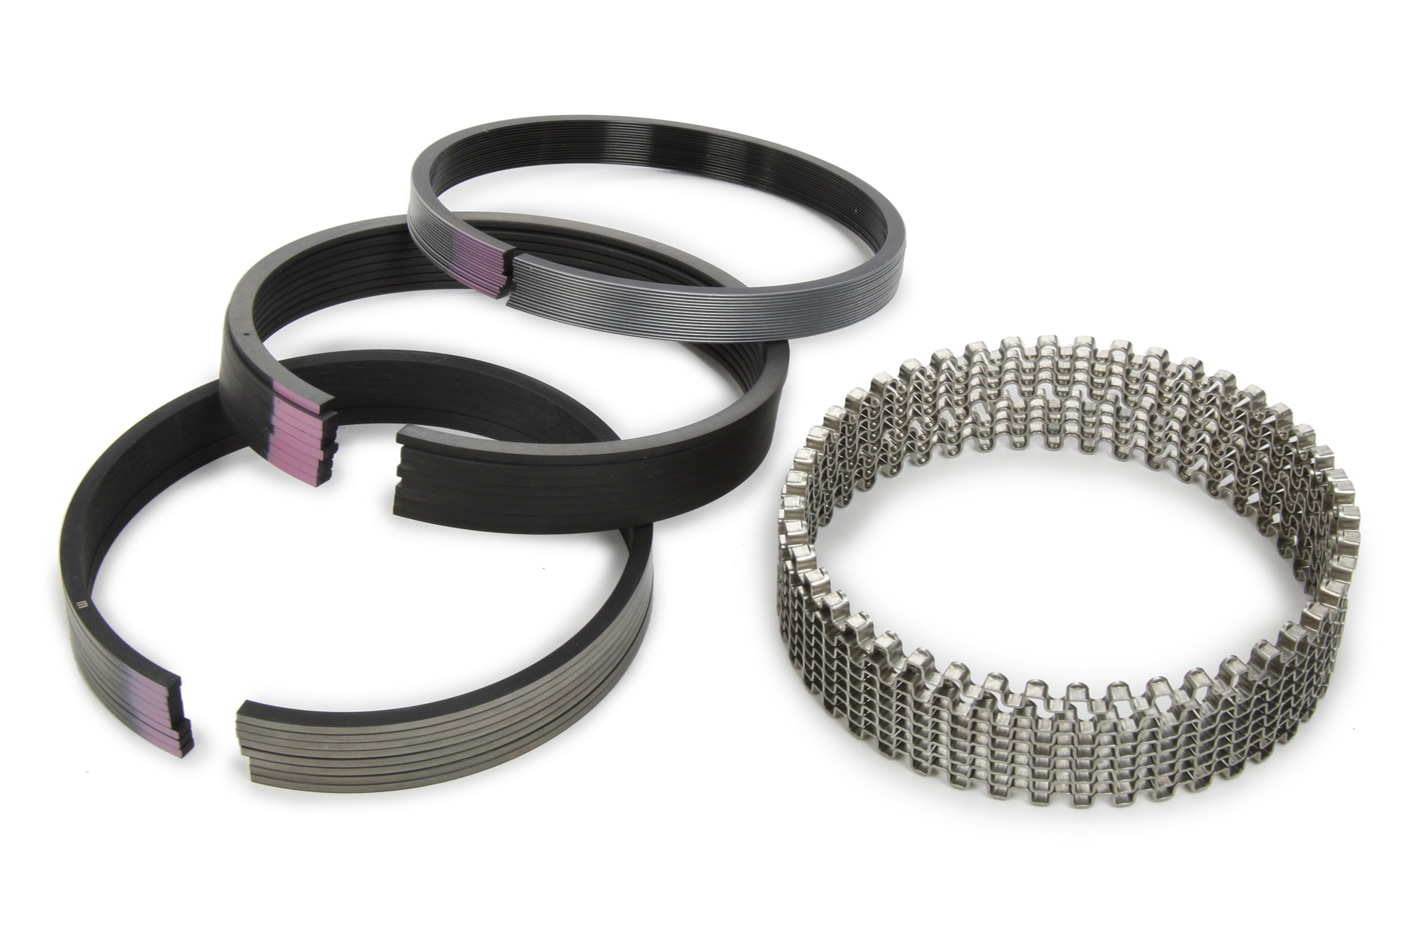 Michigan 77 40564CP.060 Piston Rings, Original, 4.060 in Bore, 5/64 x 5/64 x 3/16 in Thick, Standard Tension, Moly, 8 Cylinder, Kit